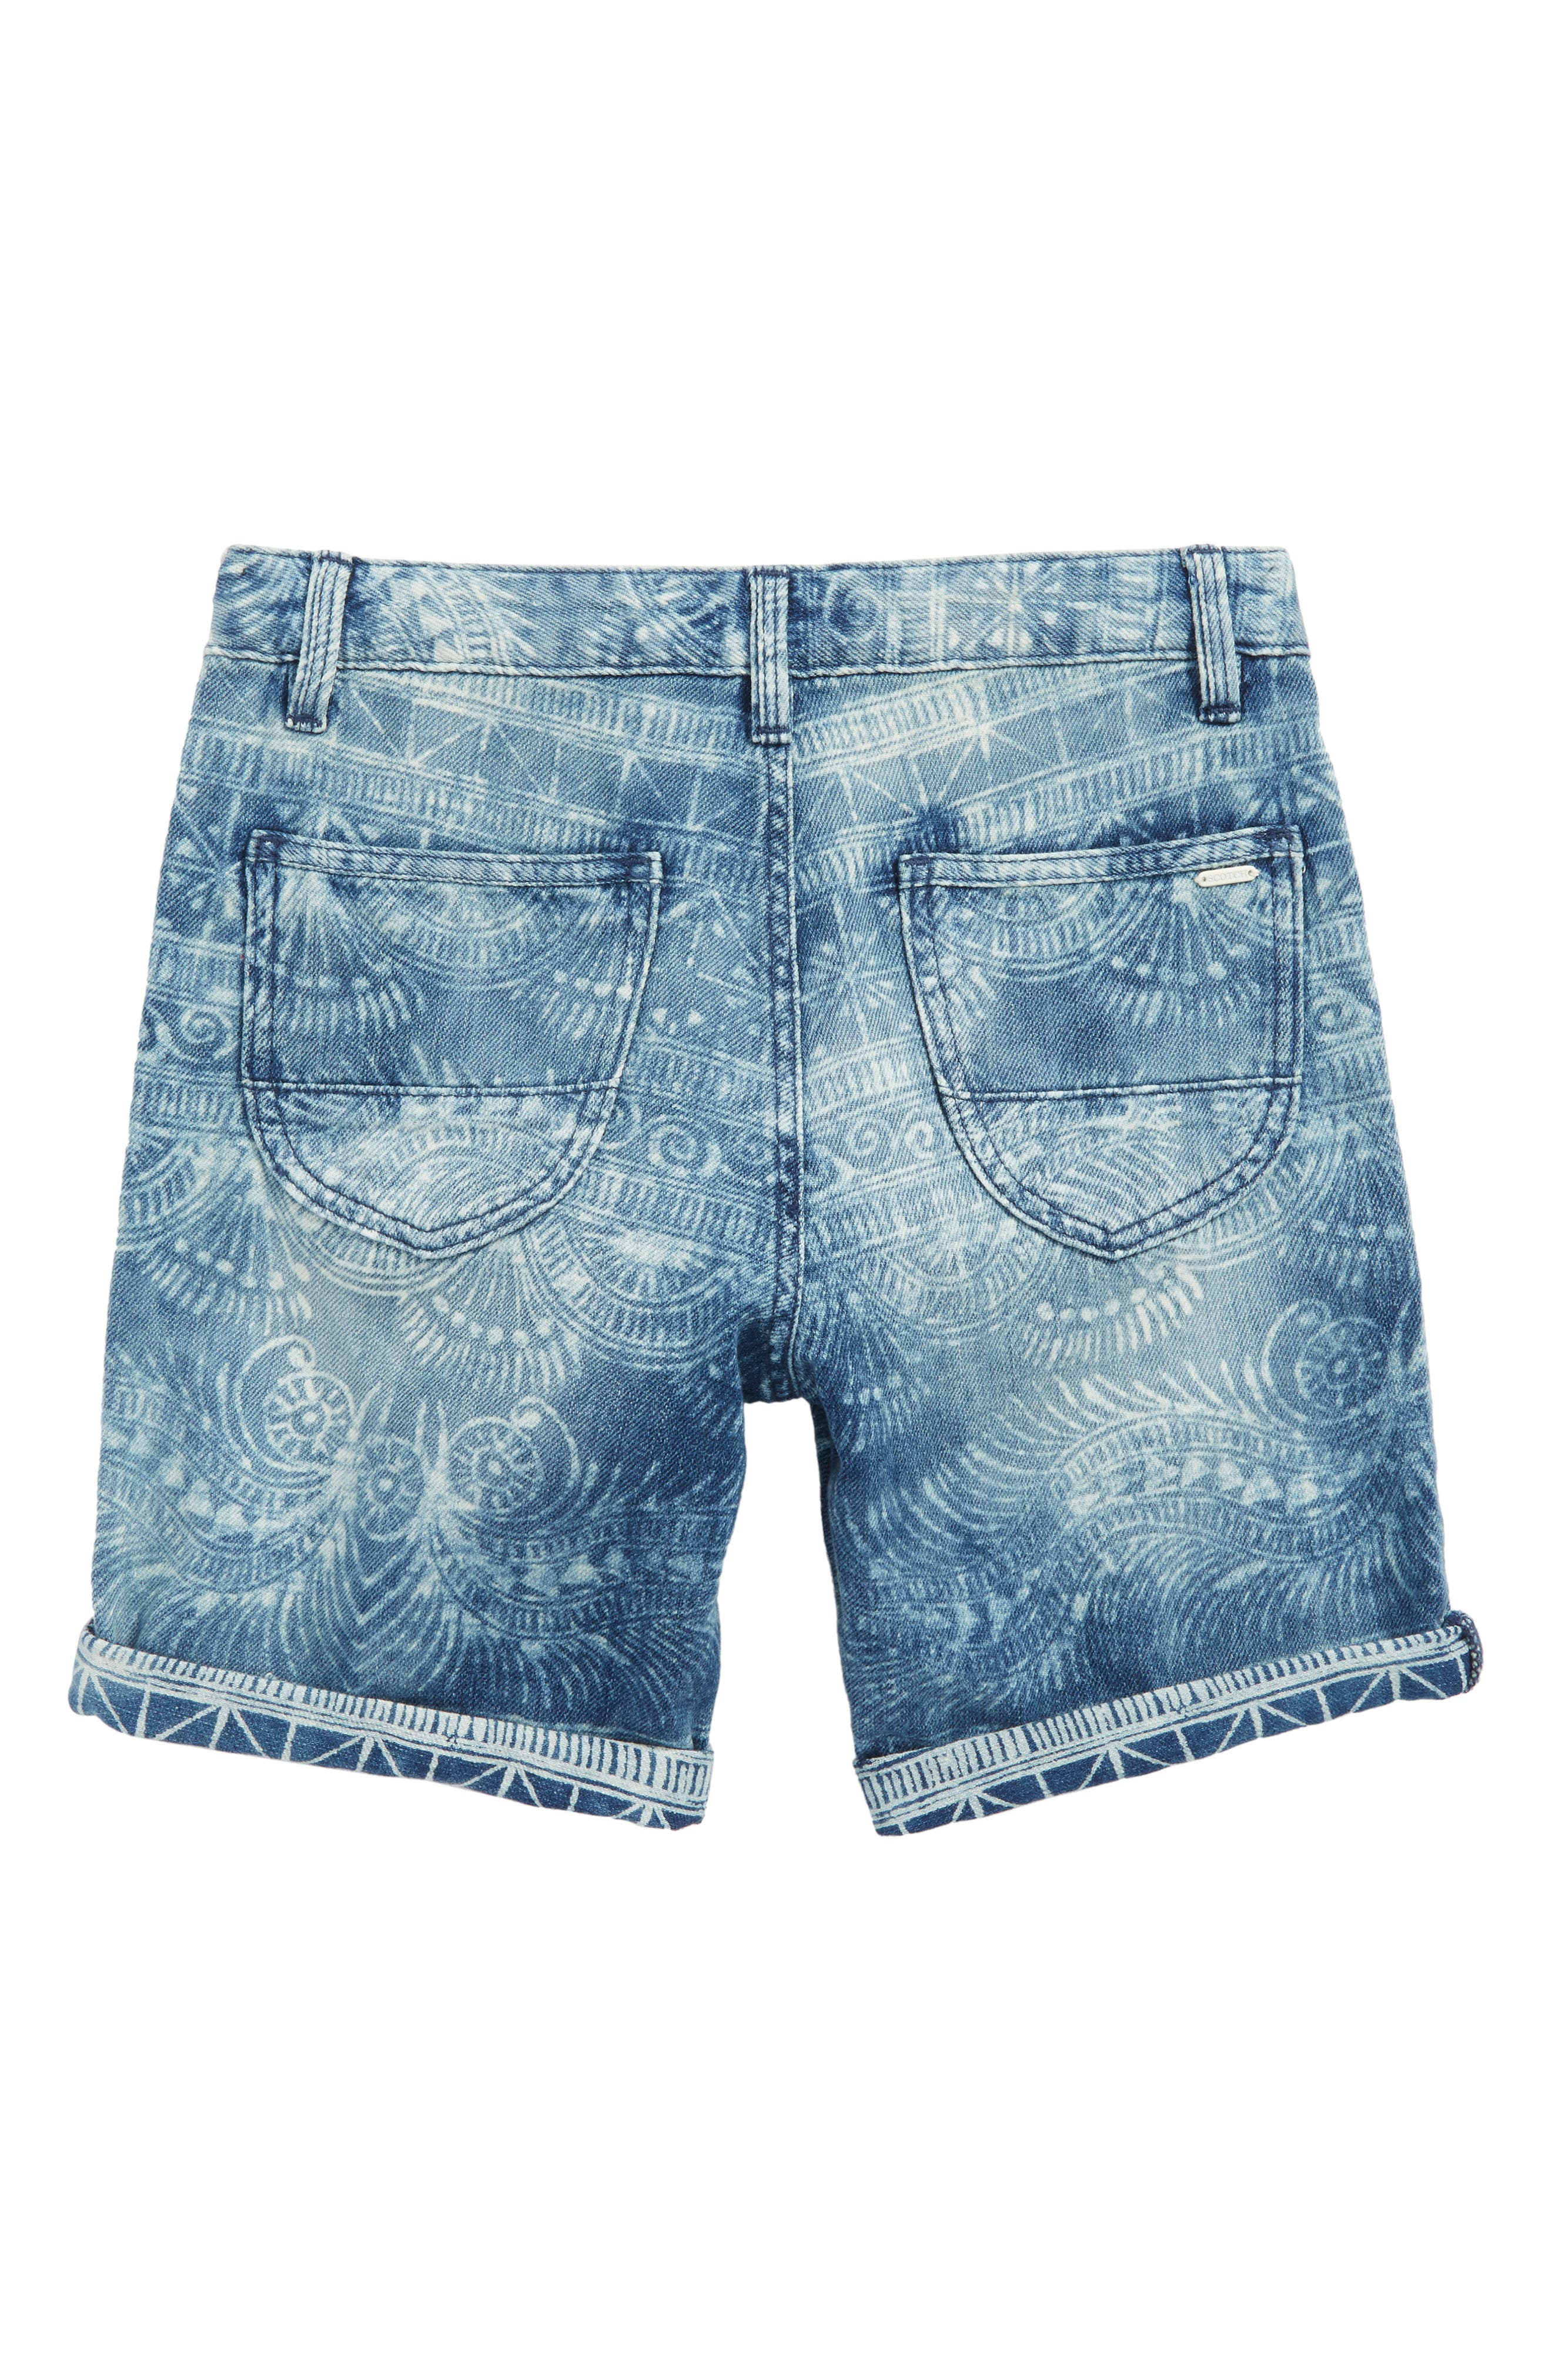 Alternate Image 2  - Scotch Shrunk Denim Chino Shorts (Little Boys & Big Boys)